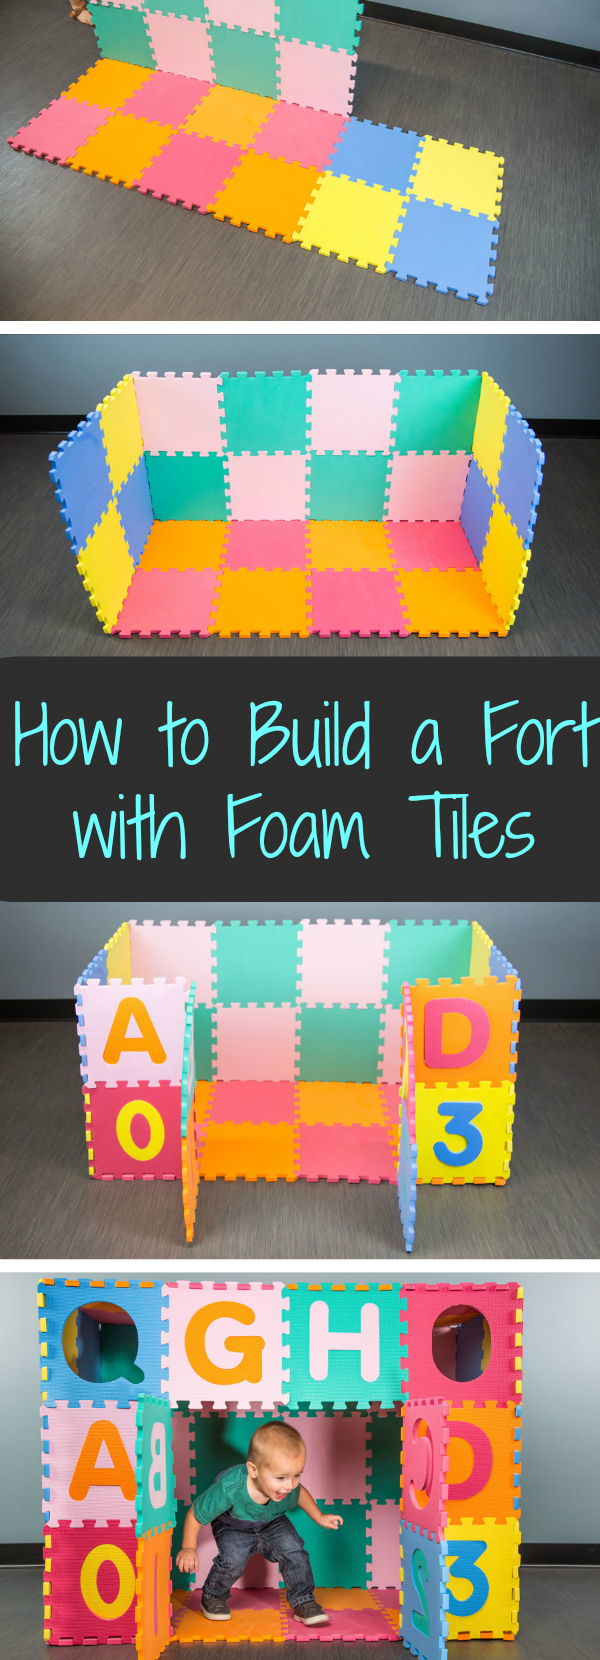 How to build a fort with foam tiles in 6 easy steps how to build a fort with foam tiles in 6 easy steps take your foam dailygadgetfo Images